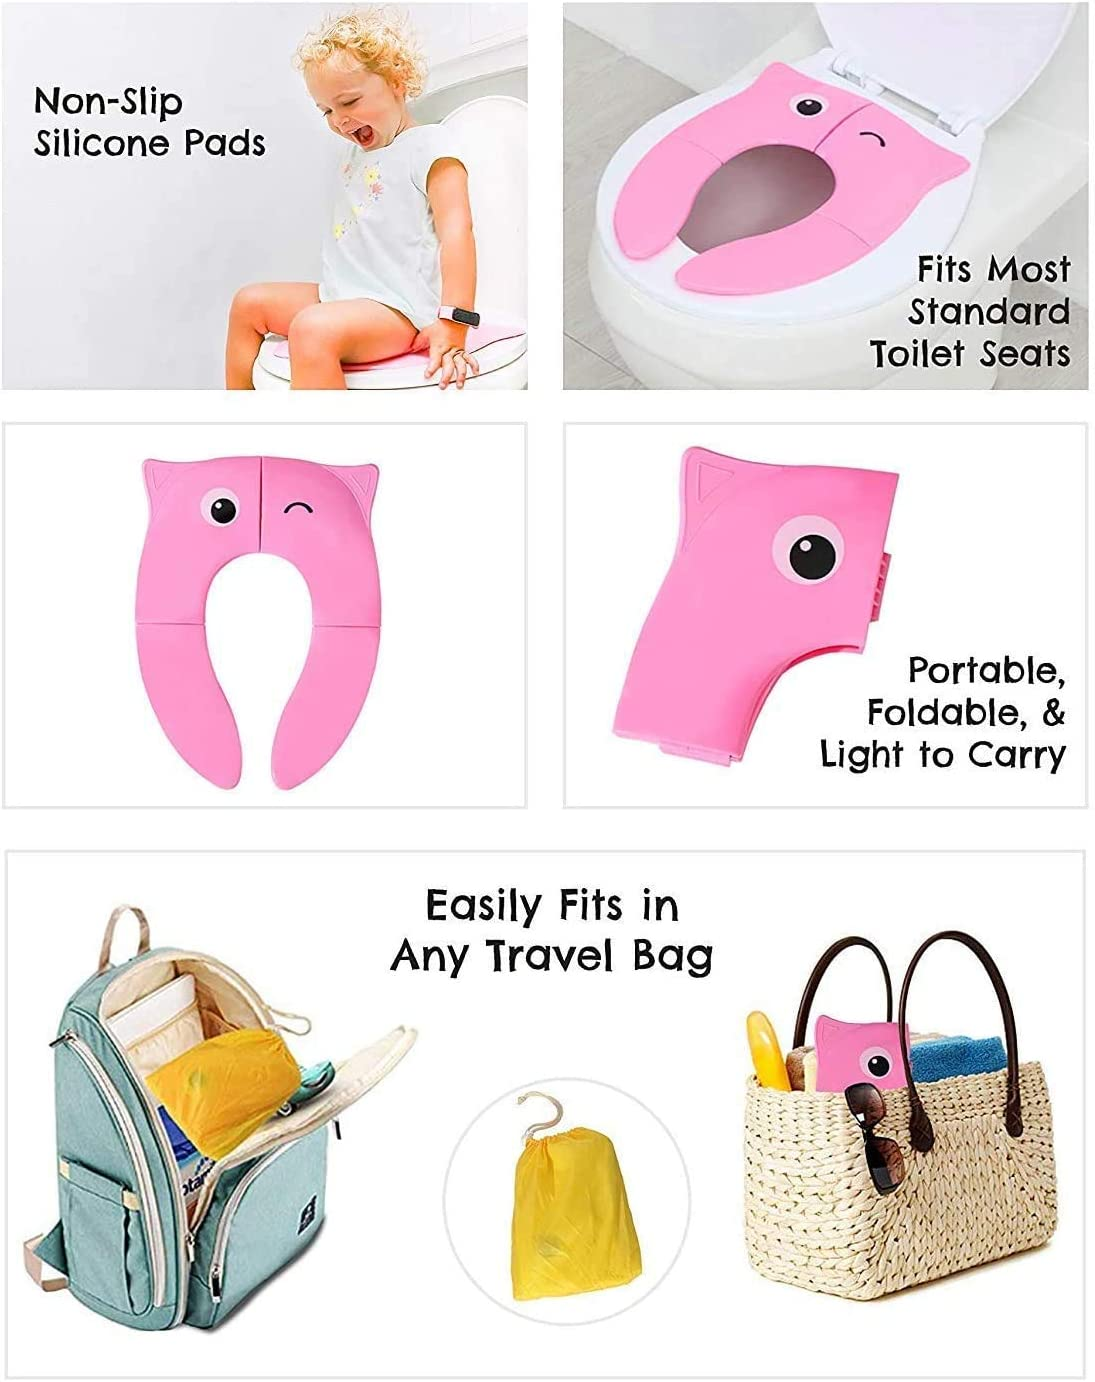 Winkin Owl, PINK INFANTO Foldable Potty Toilet Training Seat Portable Travel Potty Training Seat for Toddler Baby Toilet Seat Covers Liners with 4 Non-Slip Pads